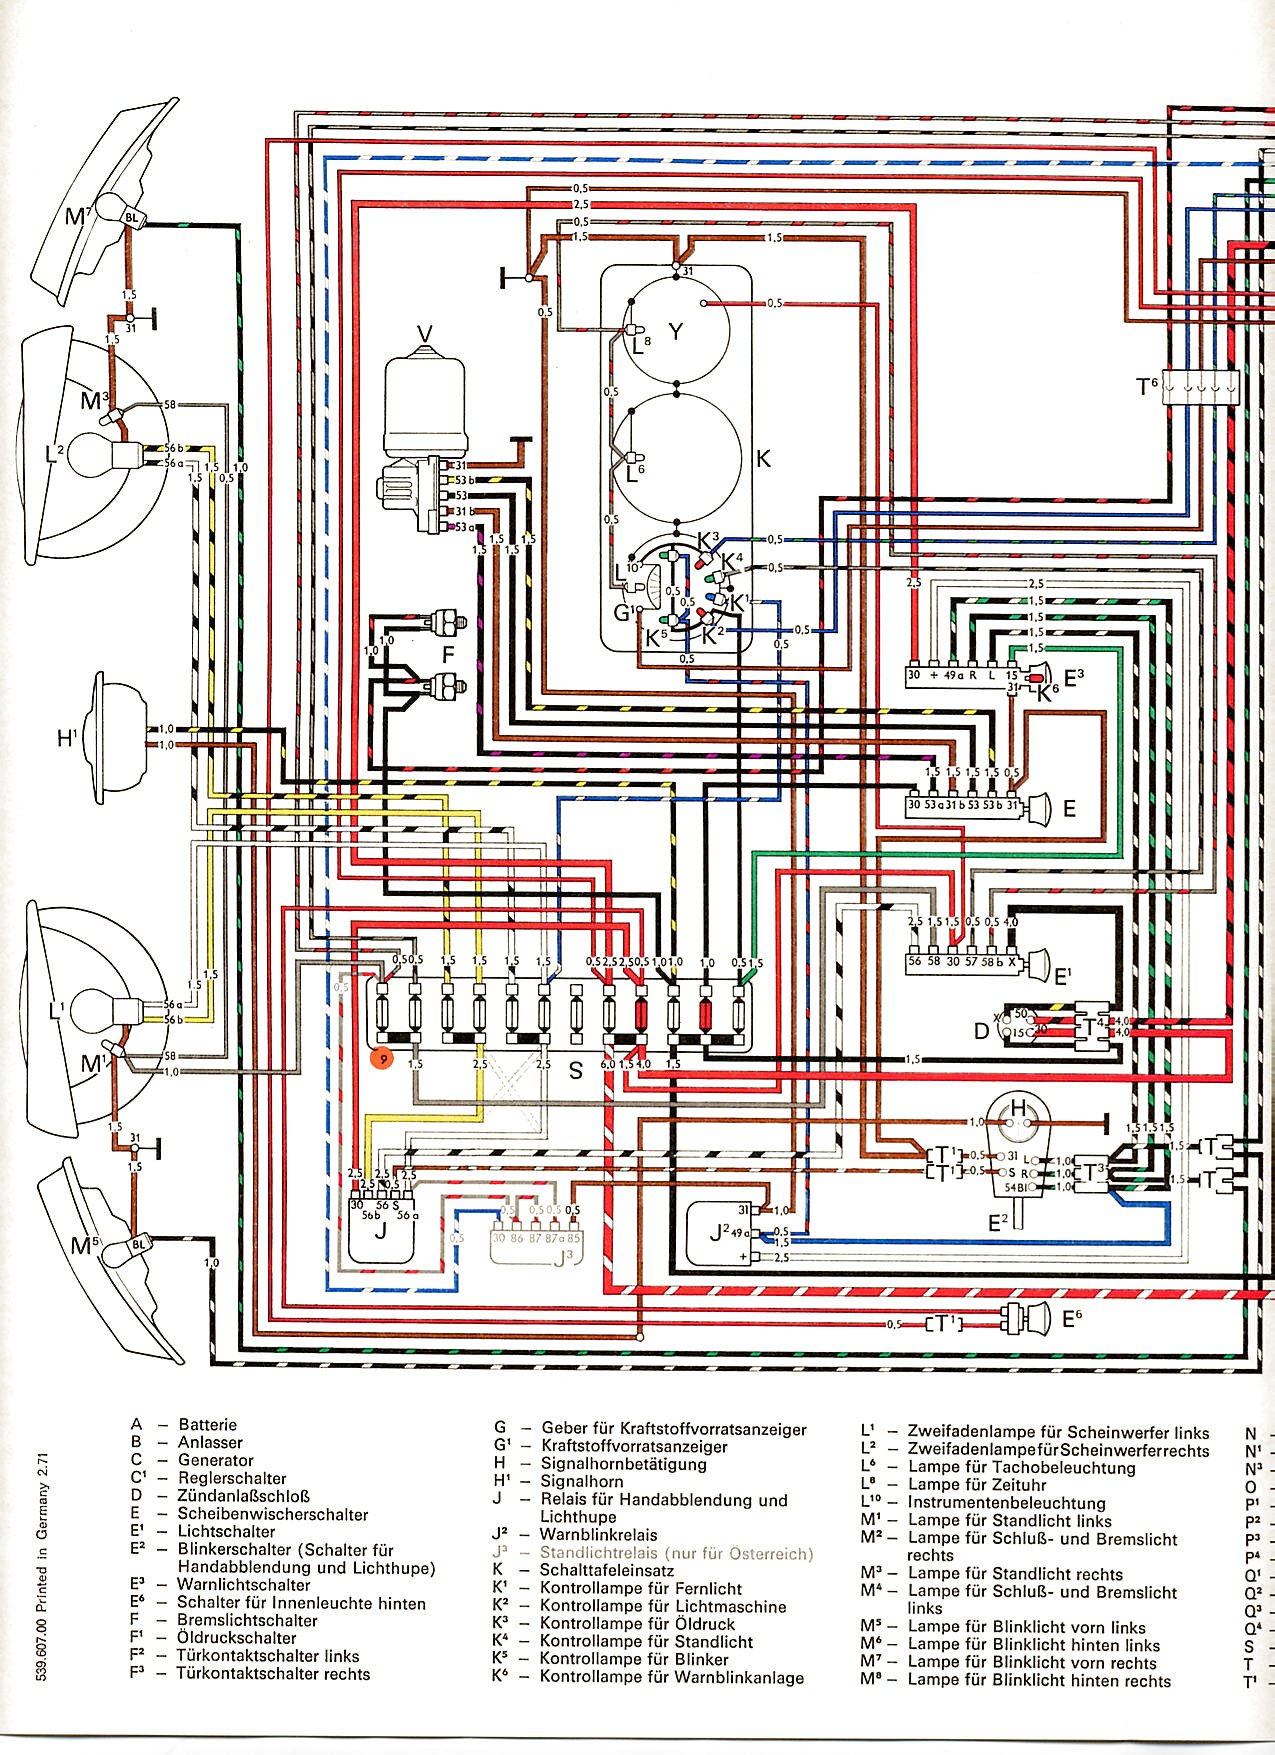 wiring diagram vw t4 schema diagram preview 1976 VW Bus Wiring Schematic